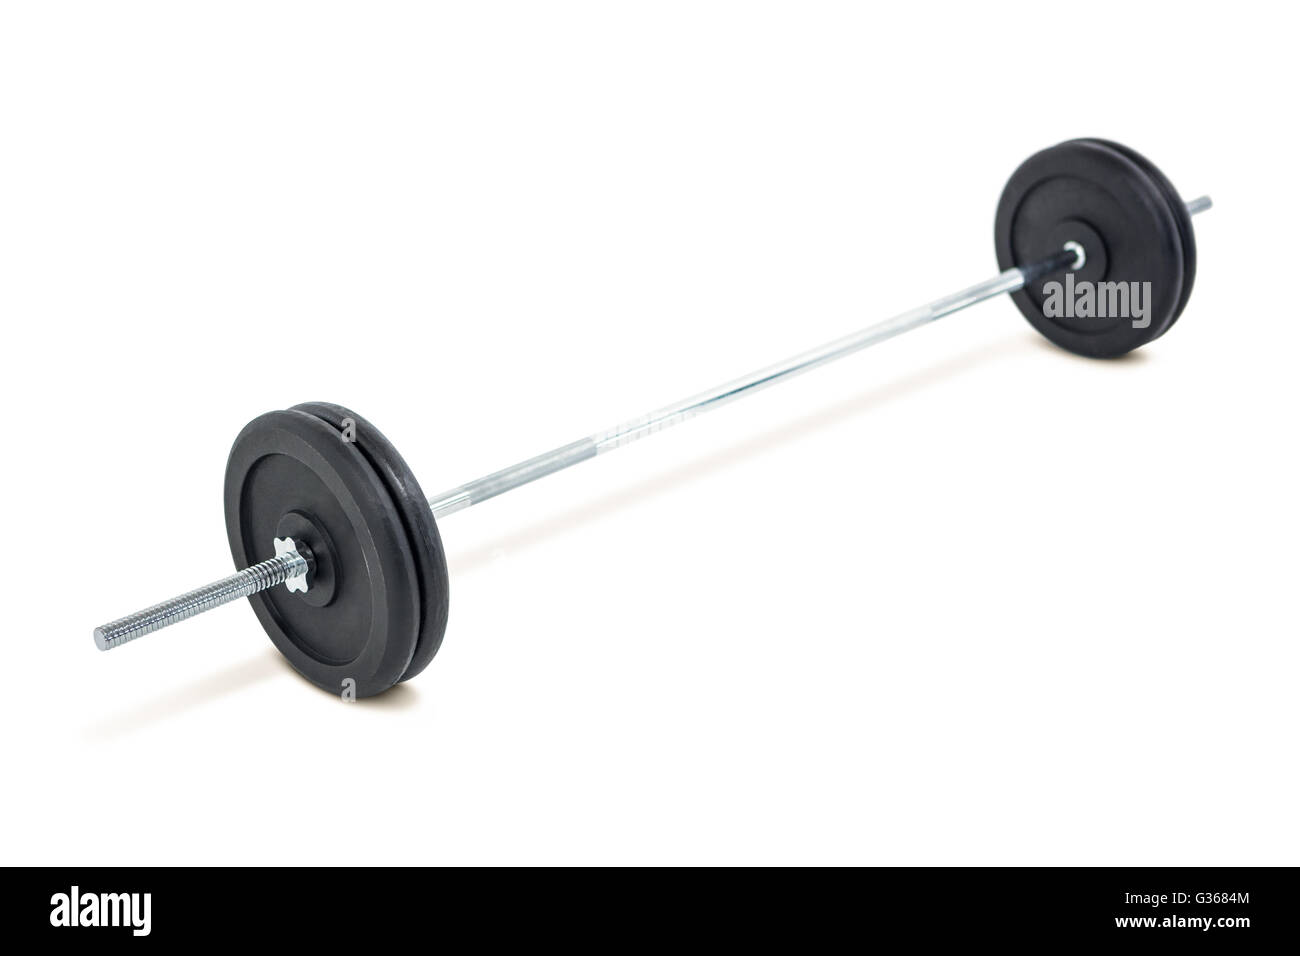 Barbell weights on white background - Stock Image